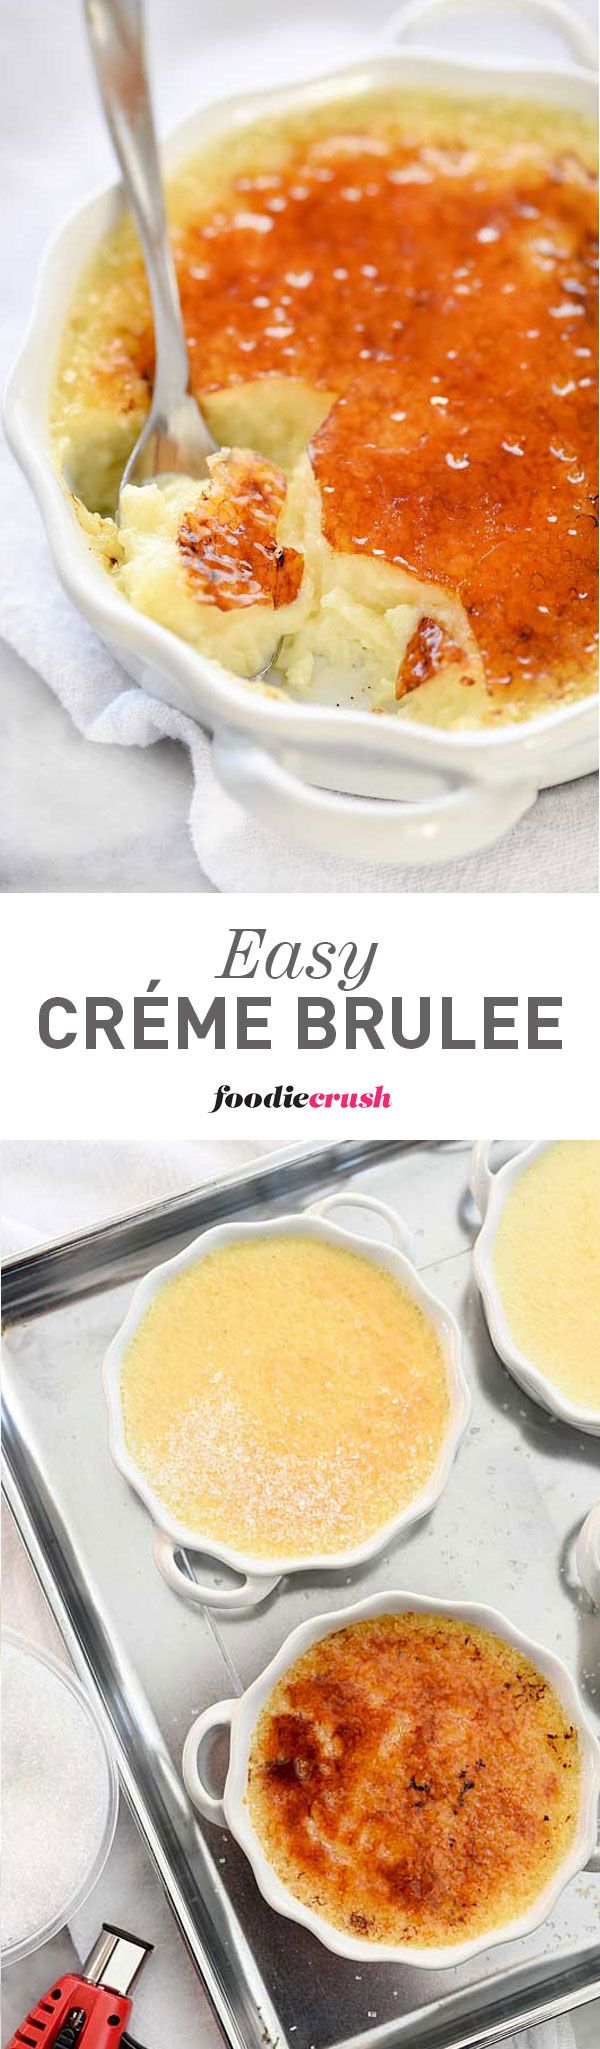 Don't be intimidated by this easy egg custard dessert's fancy perception. With these simple rules, it's really one of the simplest desserts to master.